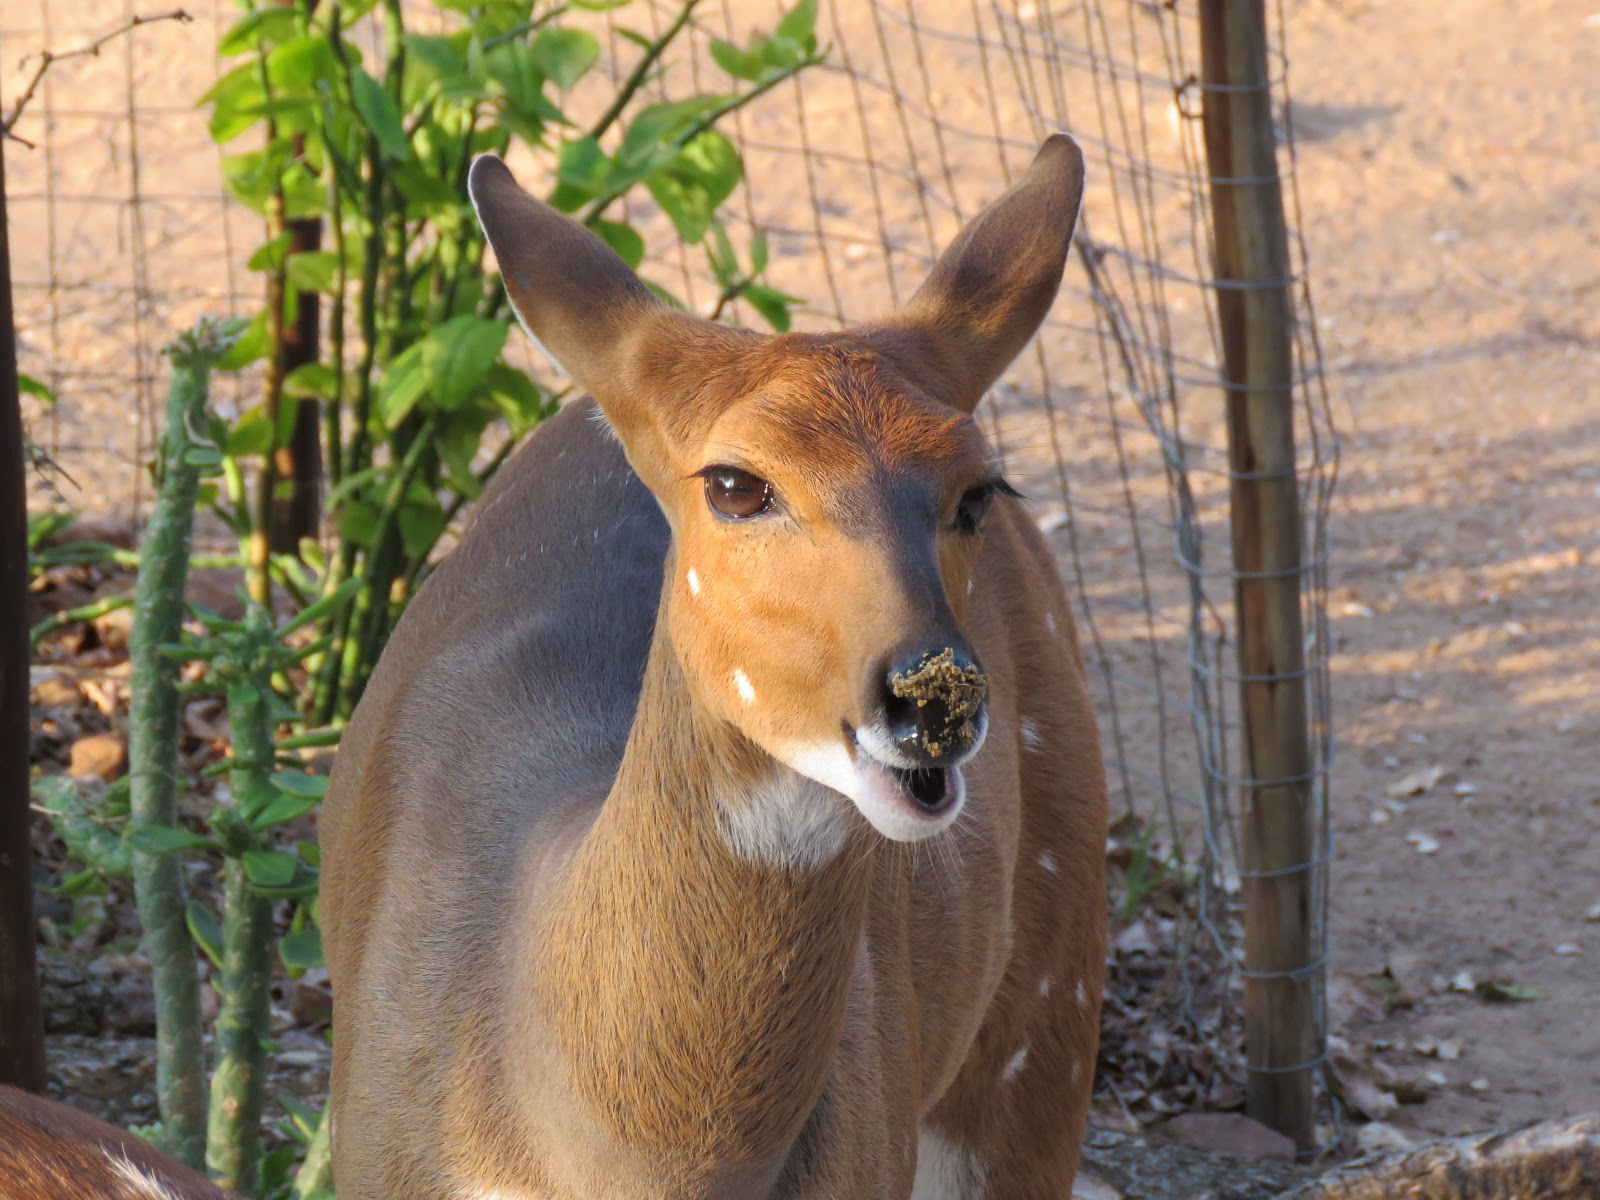 the pellet crumbs on the nose of this adorable bushbuck